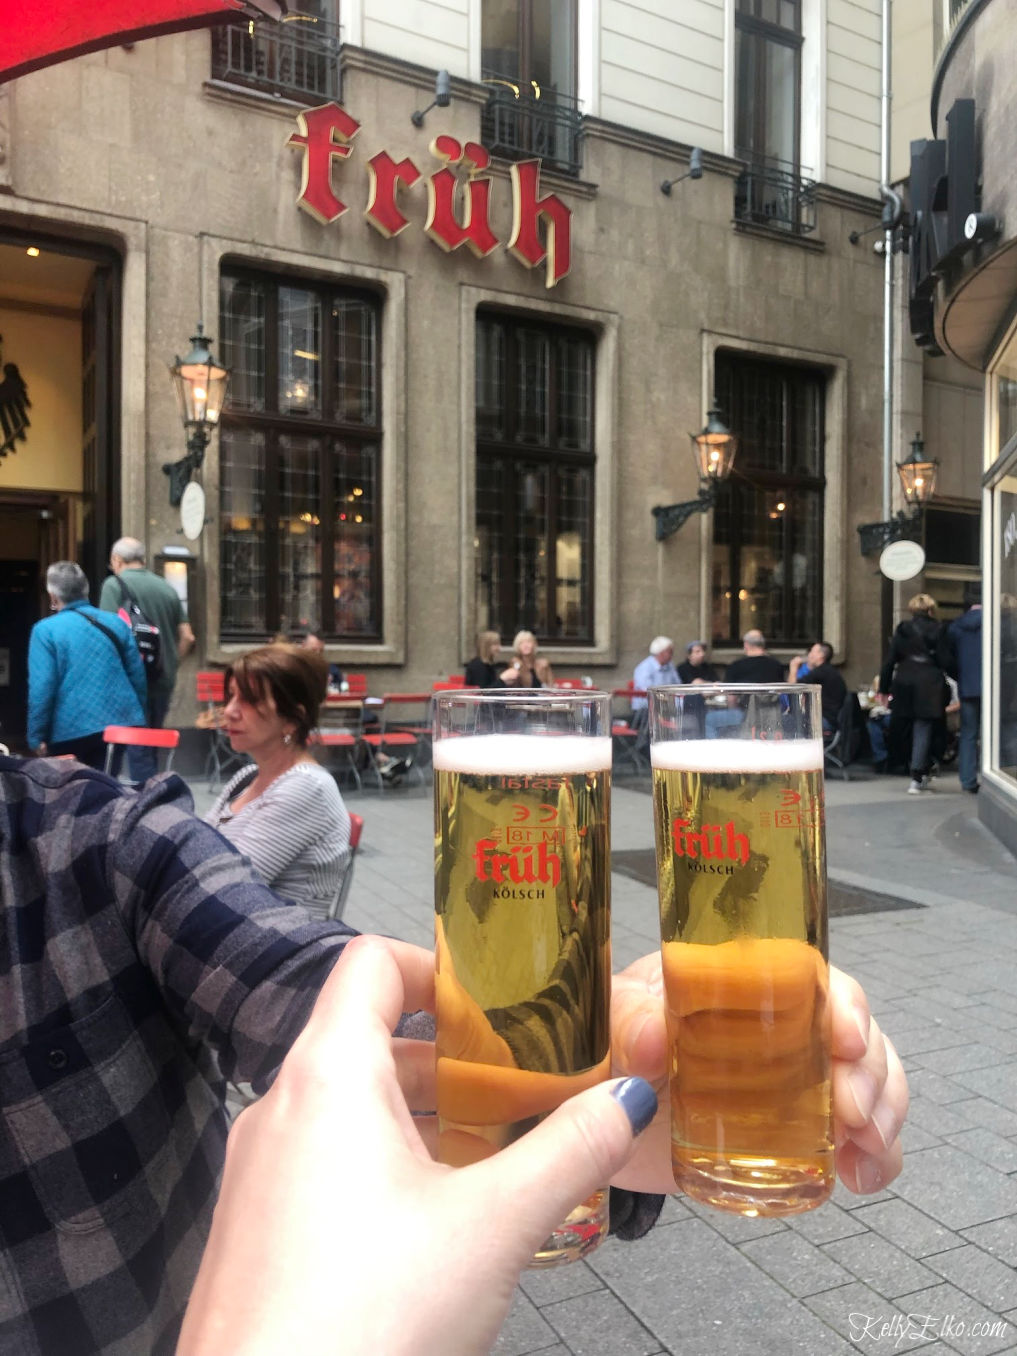 Drink Kolsch beer at a real Brauhaus while in Cologne Germany kellyelko.com #kolsch #colognegermany #brauhaus #germany #travel #beer #travelblogger #rhineriver #rivercruise